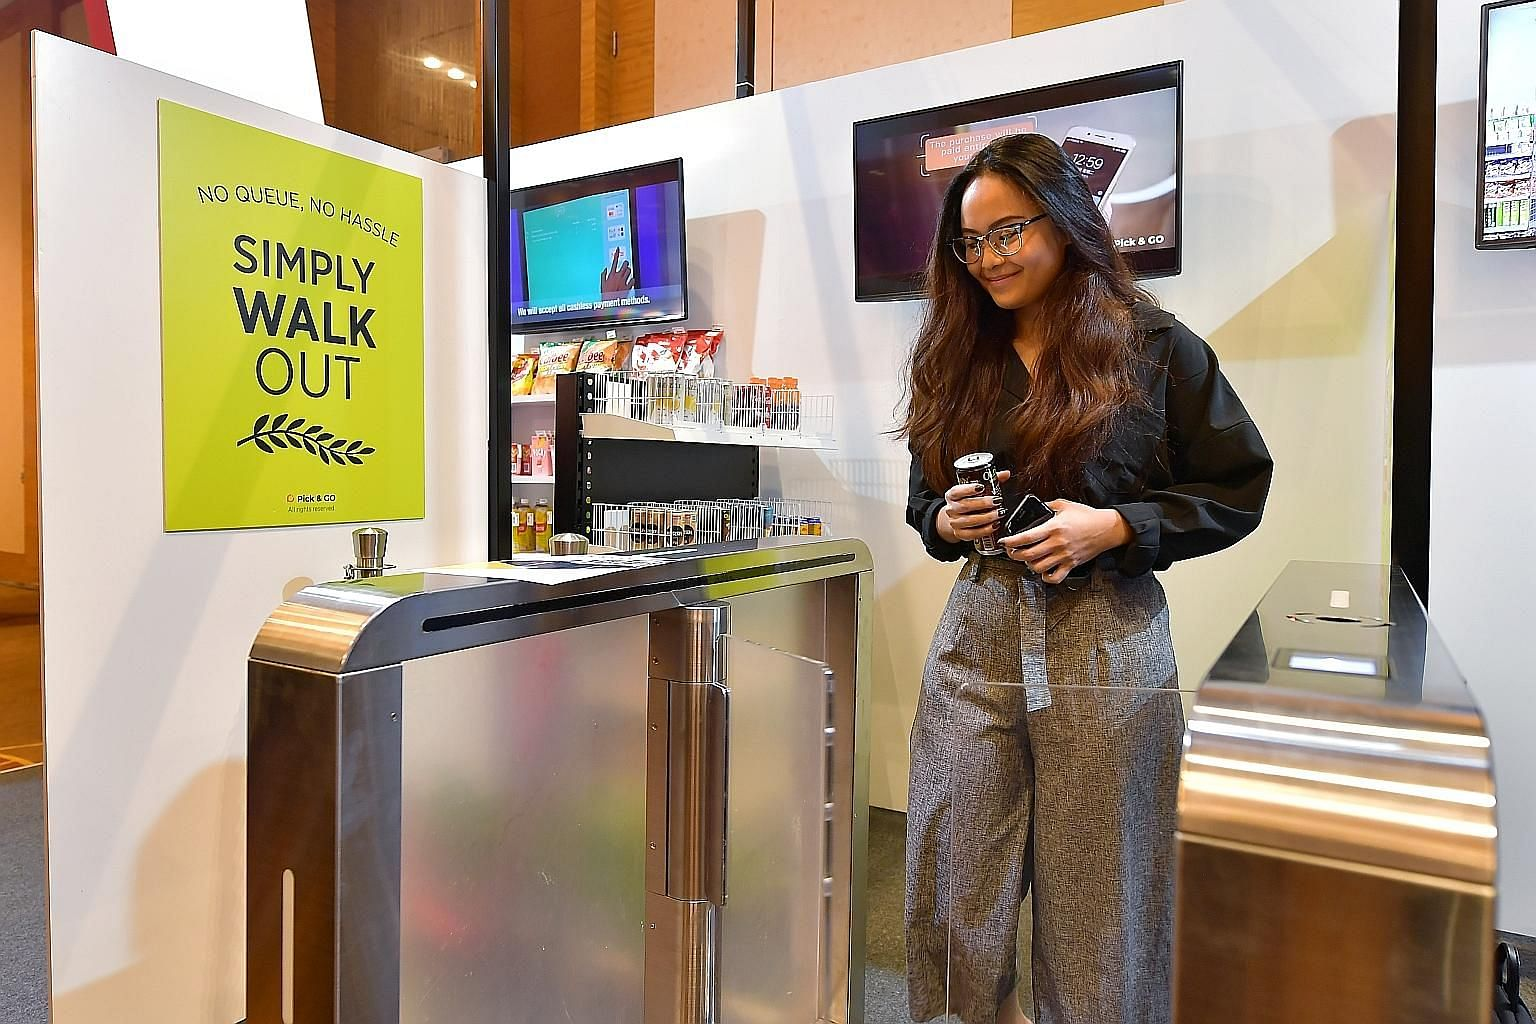 A guest at the Singapore Retail Industry Conference and Exhibition 2019 using an unmanned booth by Pick & Go. The booth eliminates the need for cashiers, with shoppers paying for their purchases by tapping in and out of gateways.